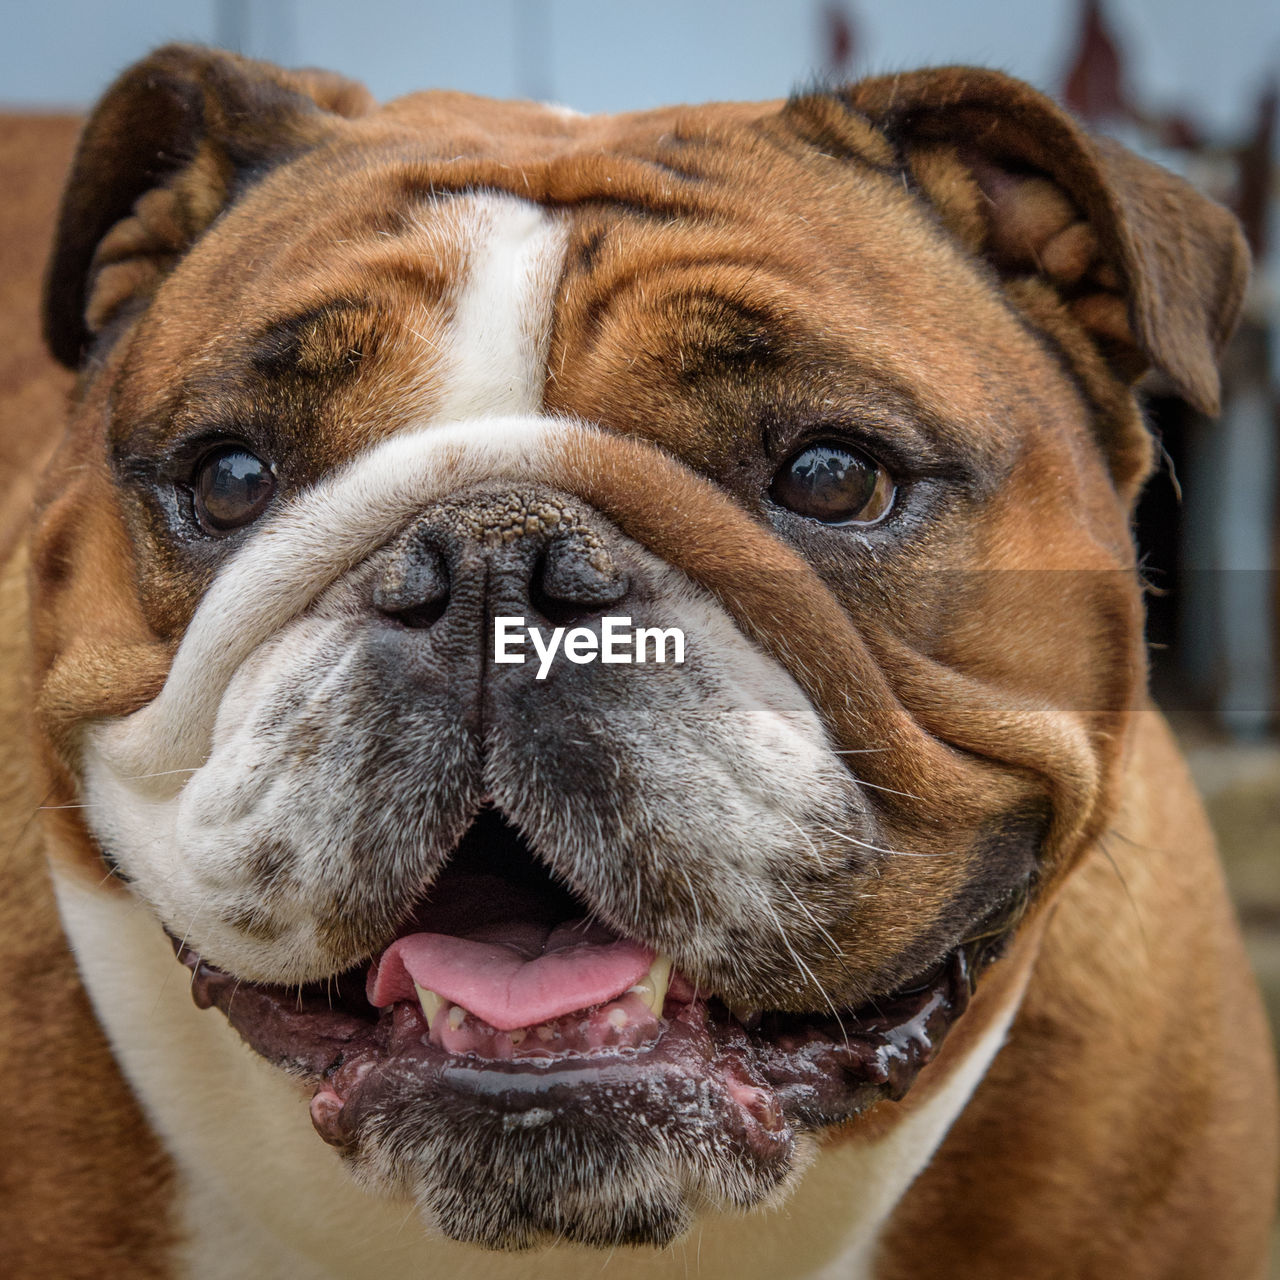 dog, canine, one animal, pets, animal themes, animal, domestic, mammal, domestic animals, vertebrate, close-up, animal body part, no people, focus on foreground, animal head, brown, portrait, looking at camera, indoors, looking, animal nose, snout, animal mouth